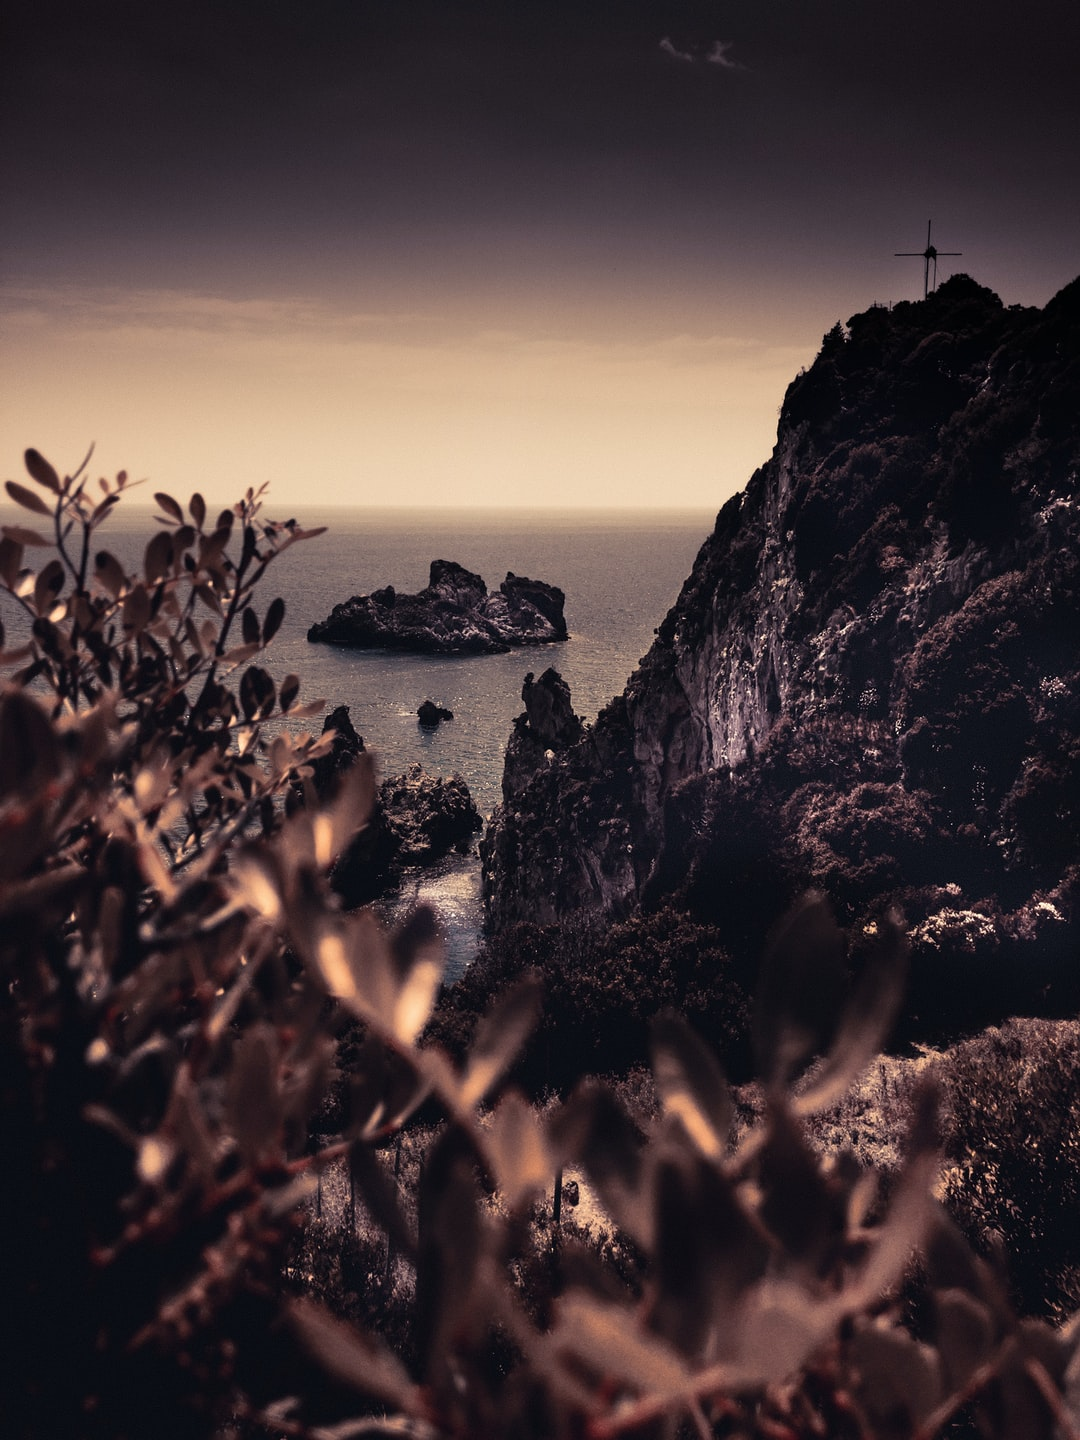 View of the sea in a rocky bay with plants